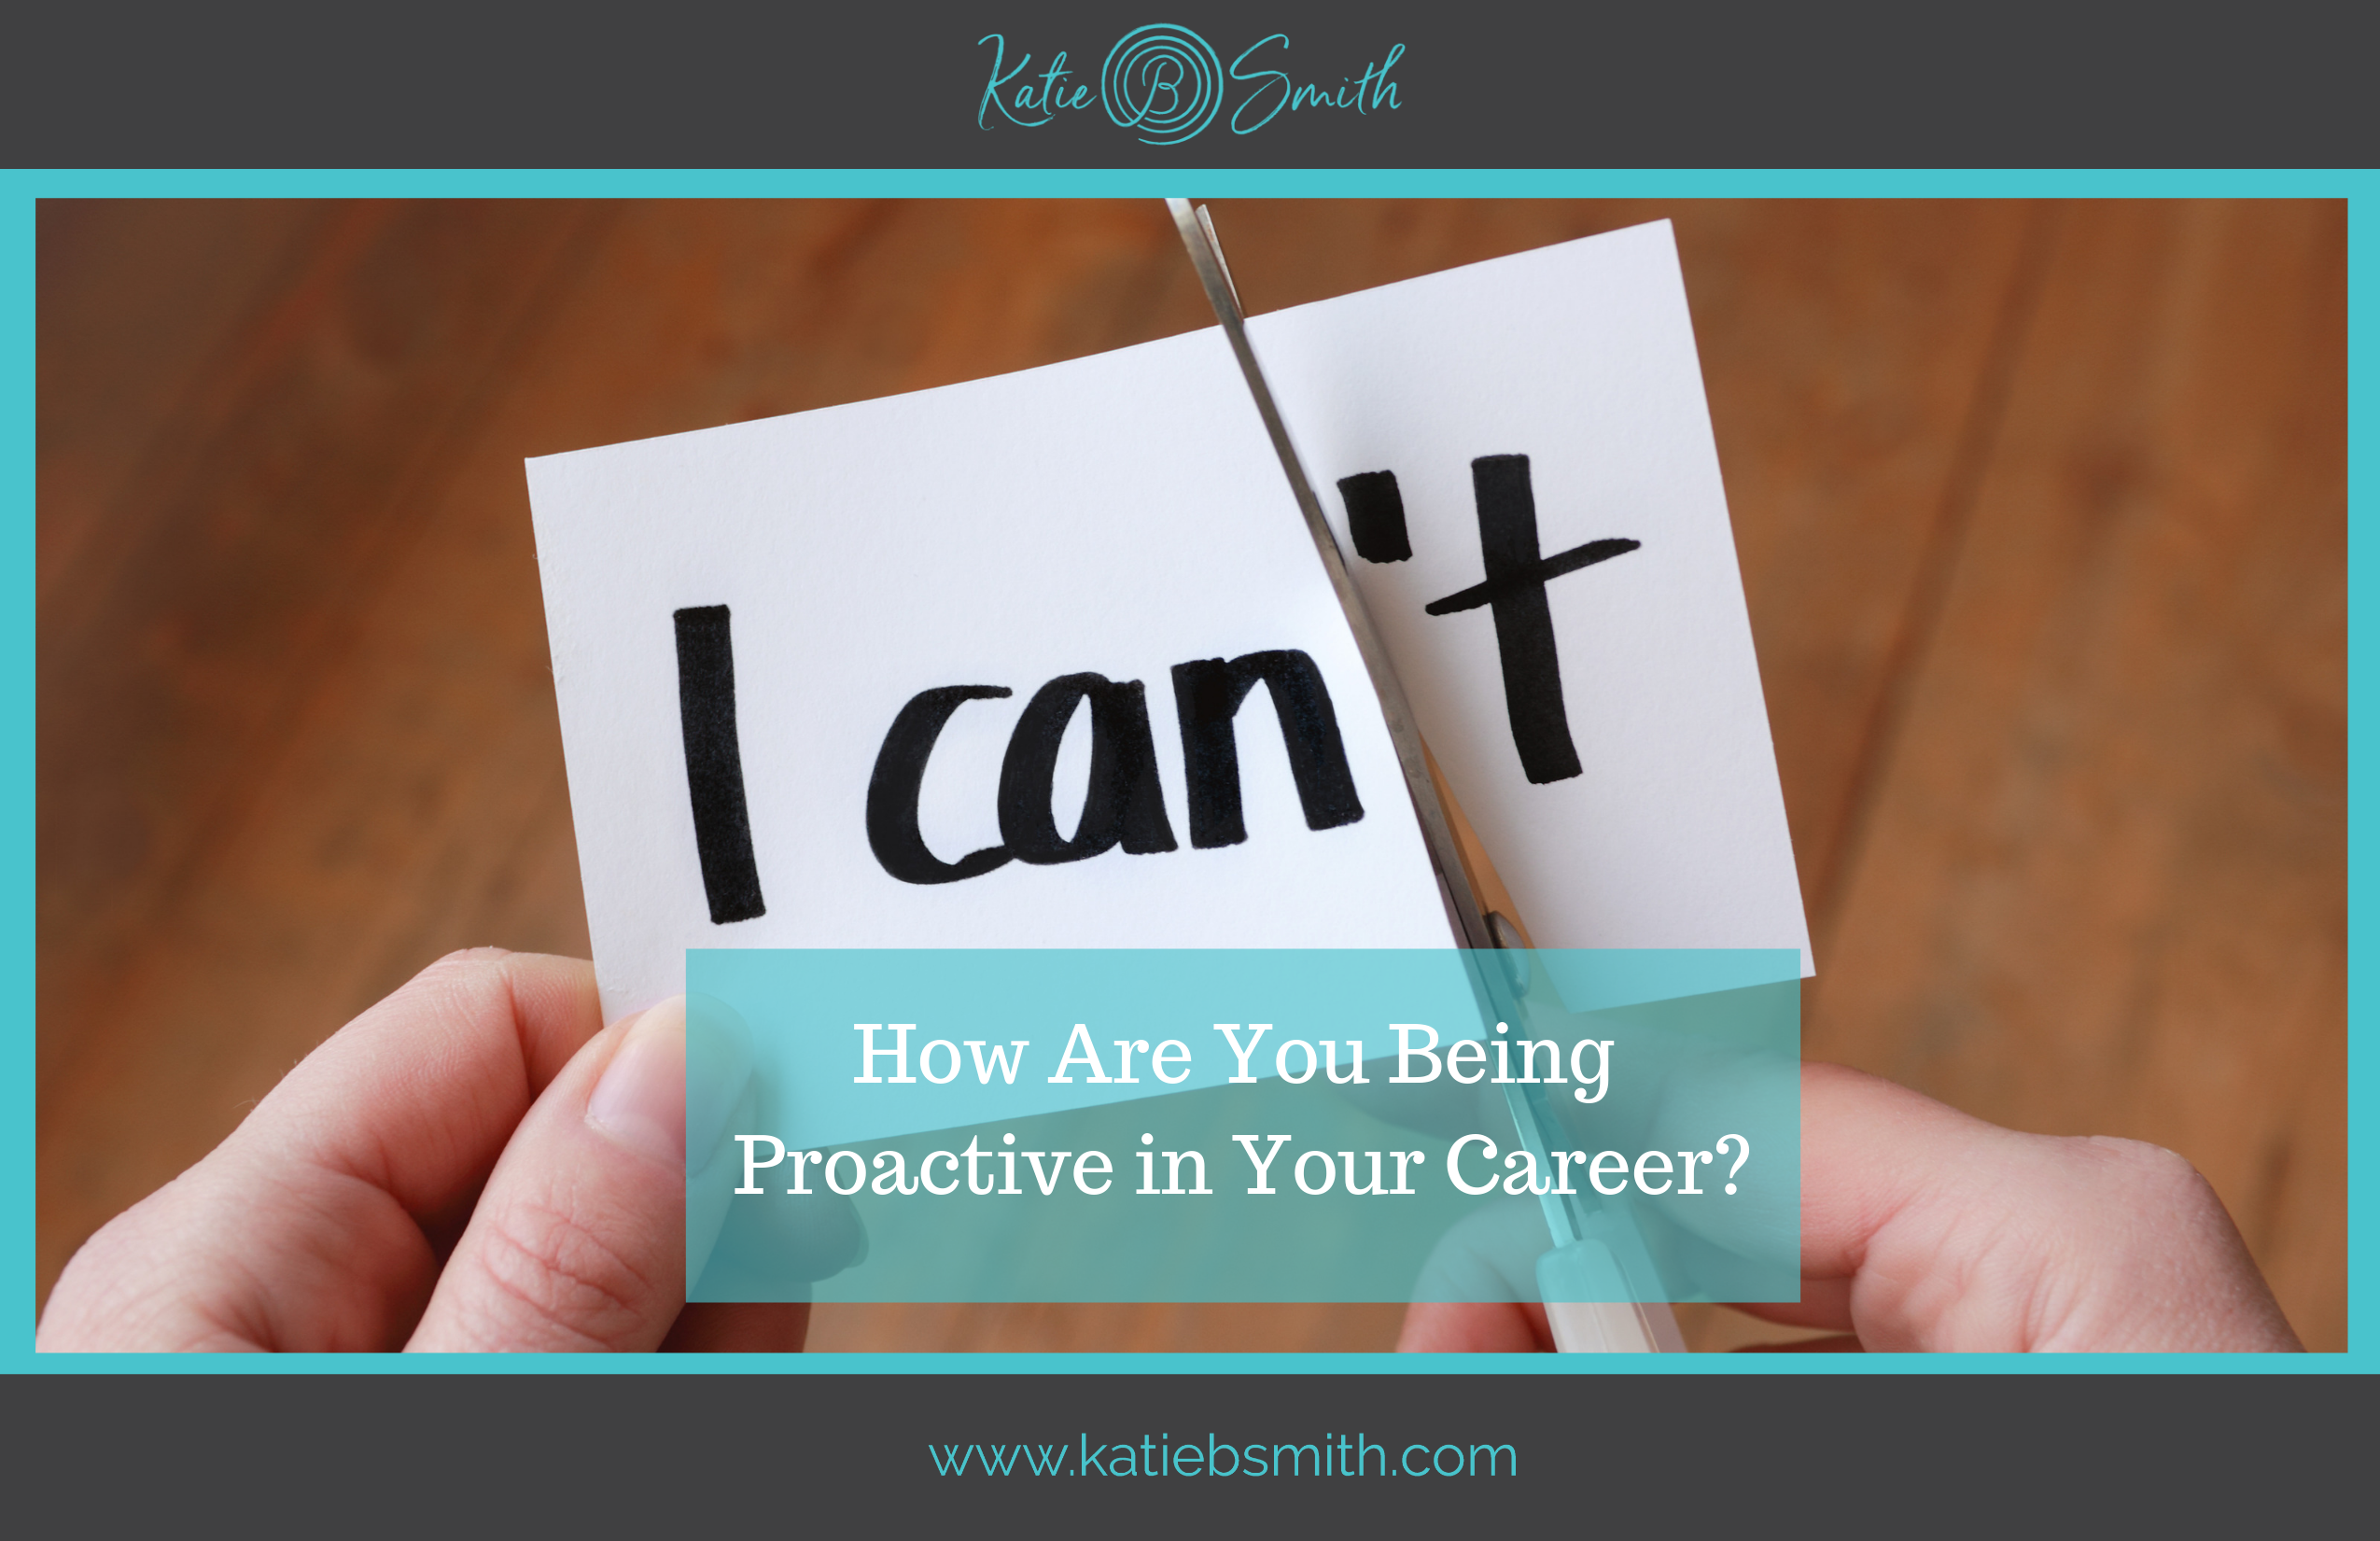 How Do You Brand Yourself When You Are in a Career Change?